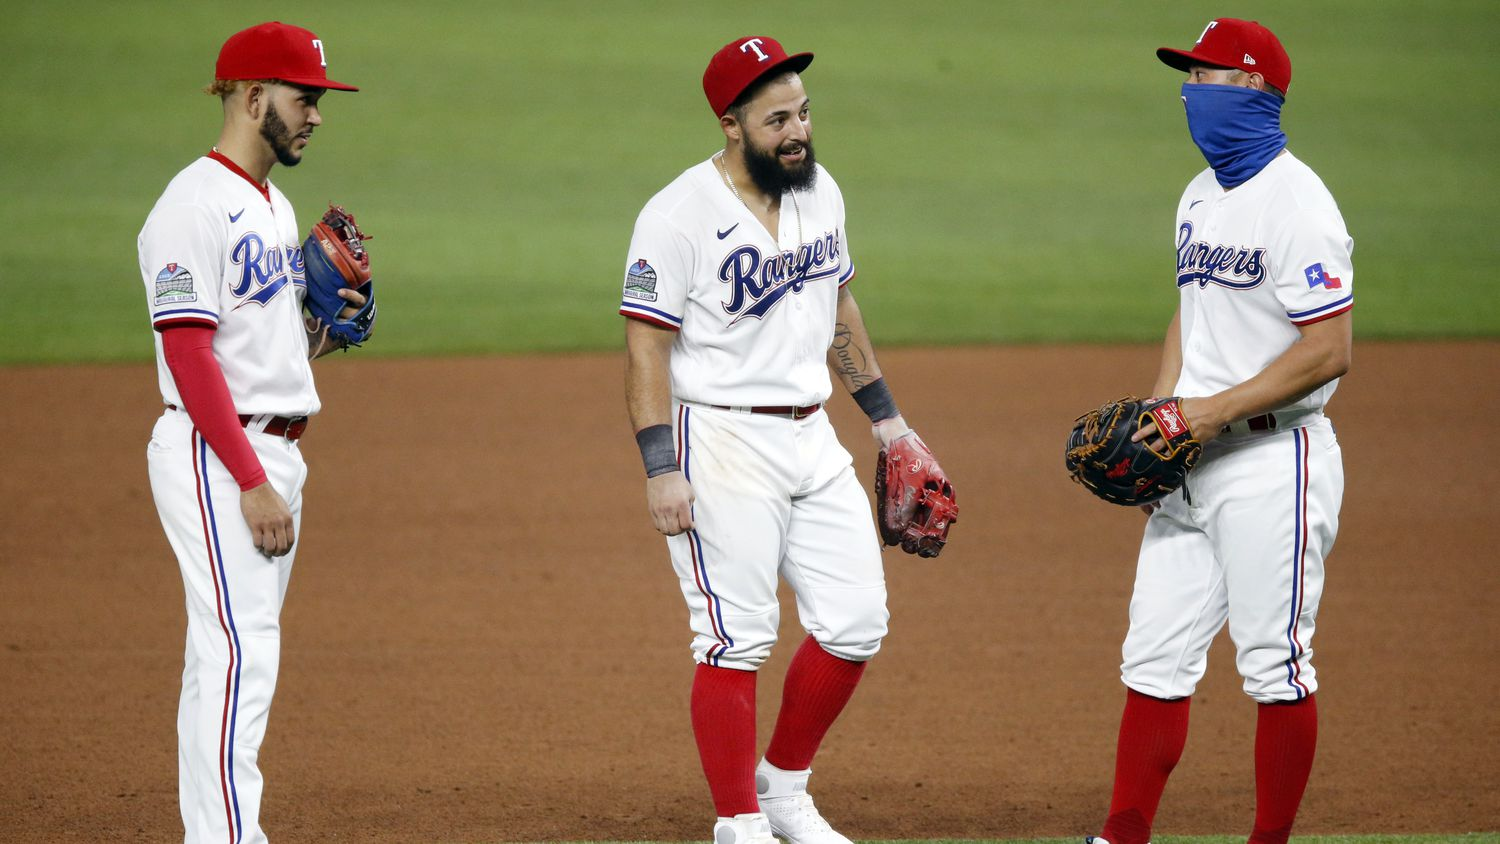 Texas Rangers second baseman Rougned Odor (center) visit with teammates Rob Refsnyder (right) and Anderson Tejada during a pitching change in the ninth inning against the Seattle Mariners at Globe Life Field in Arlington, Monday, August 10, 2020.